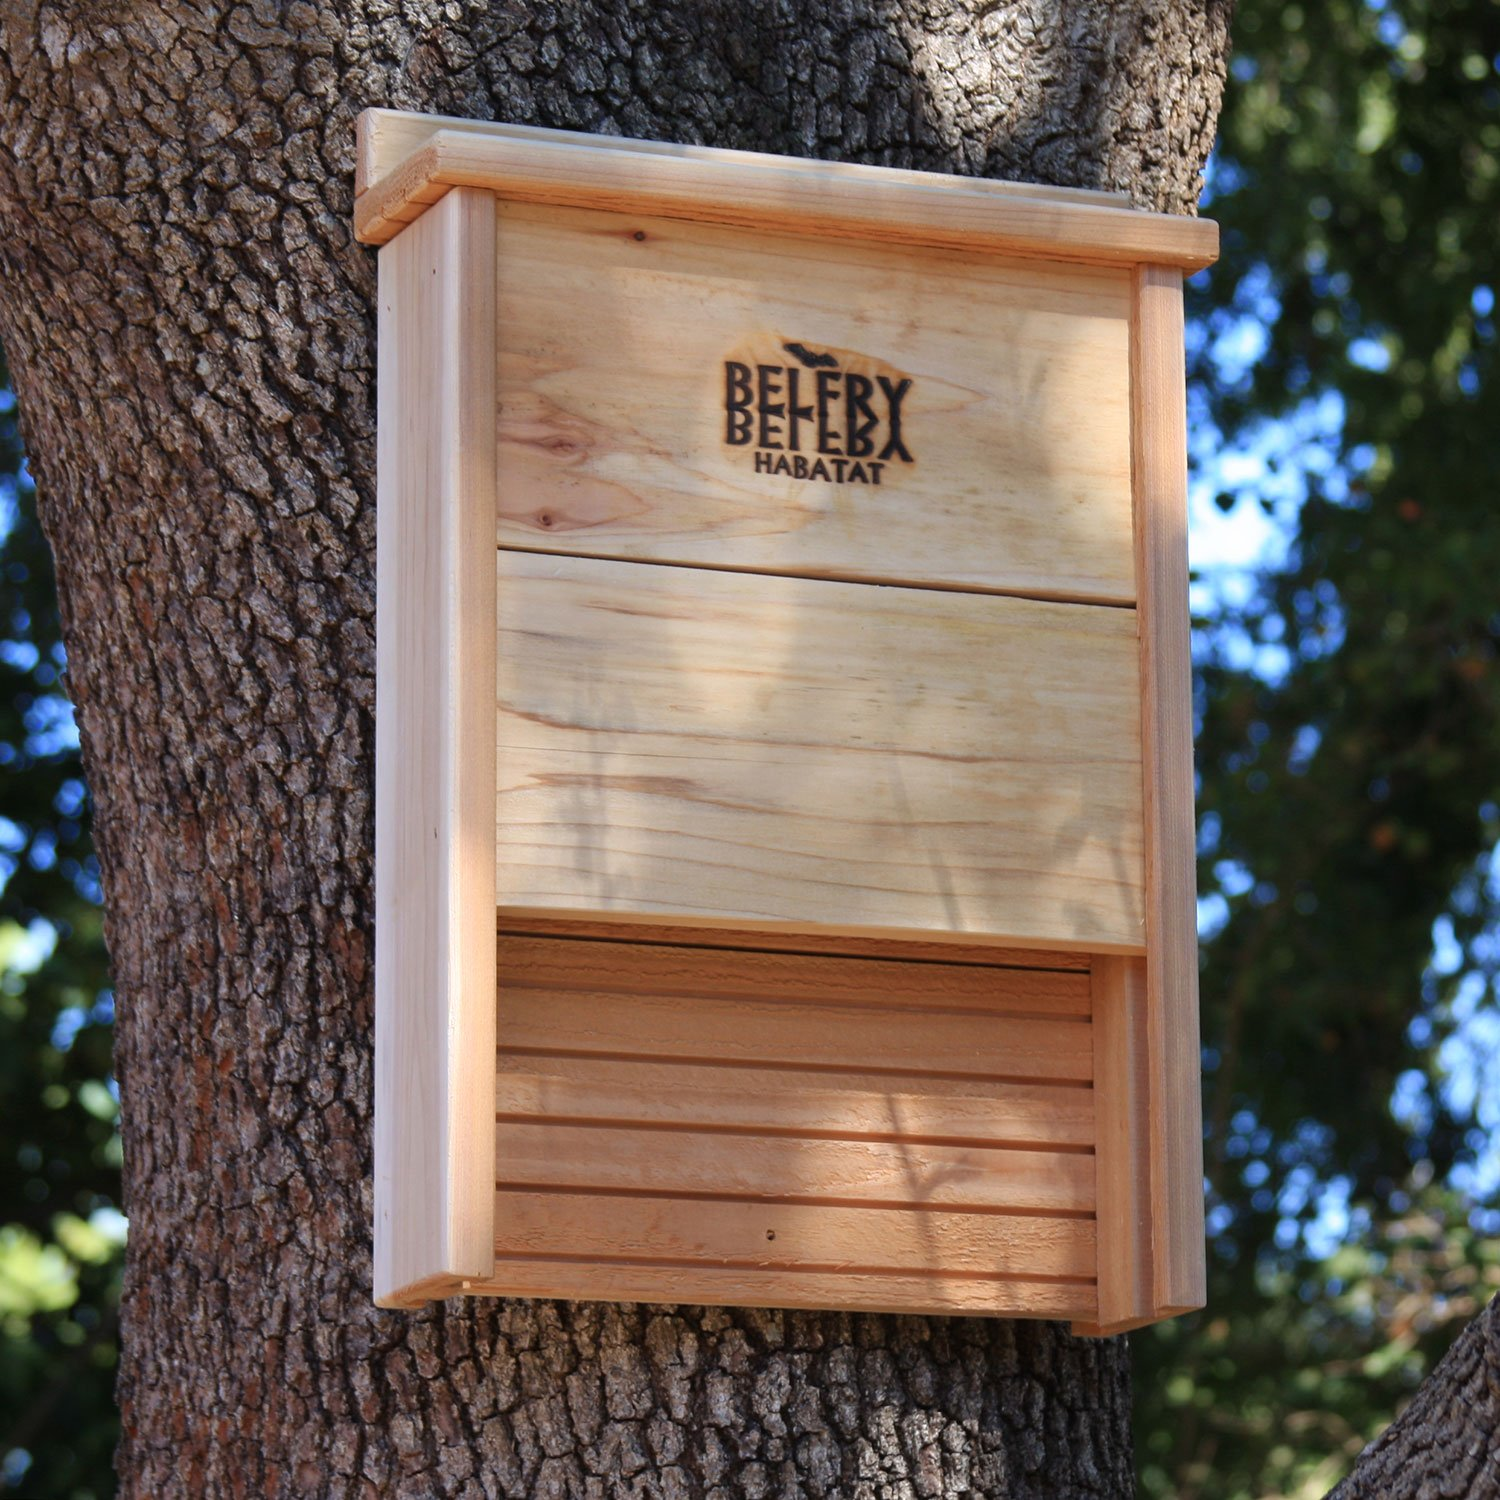 What Does A Bat House Look Like?